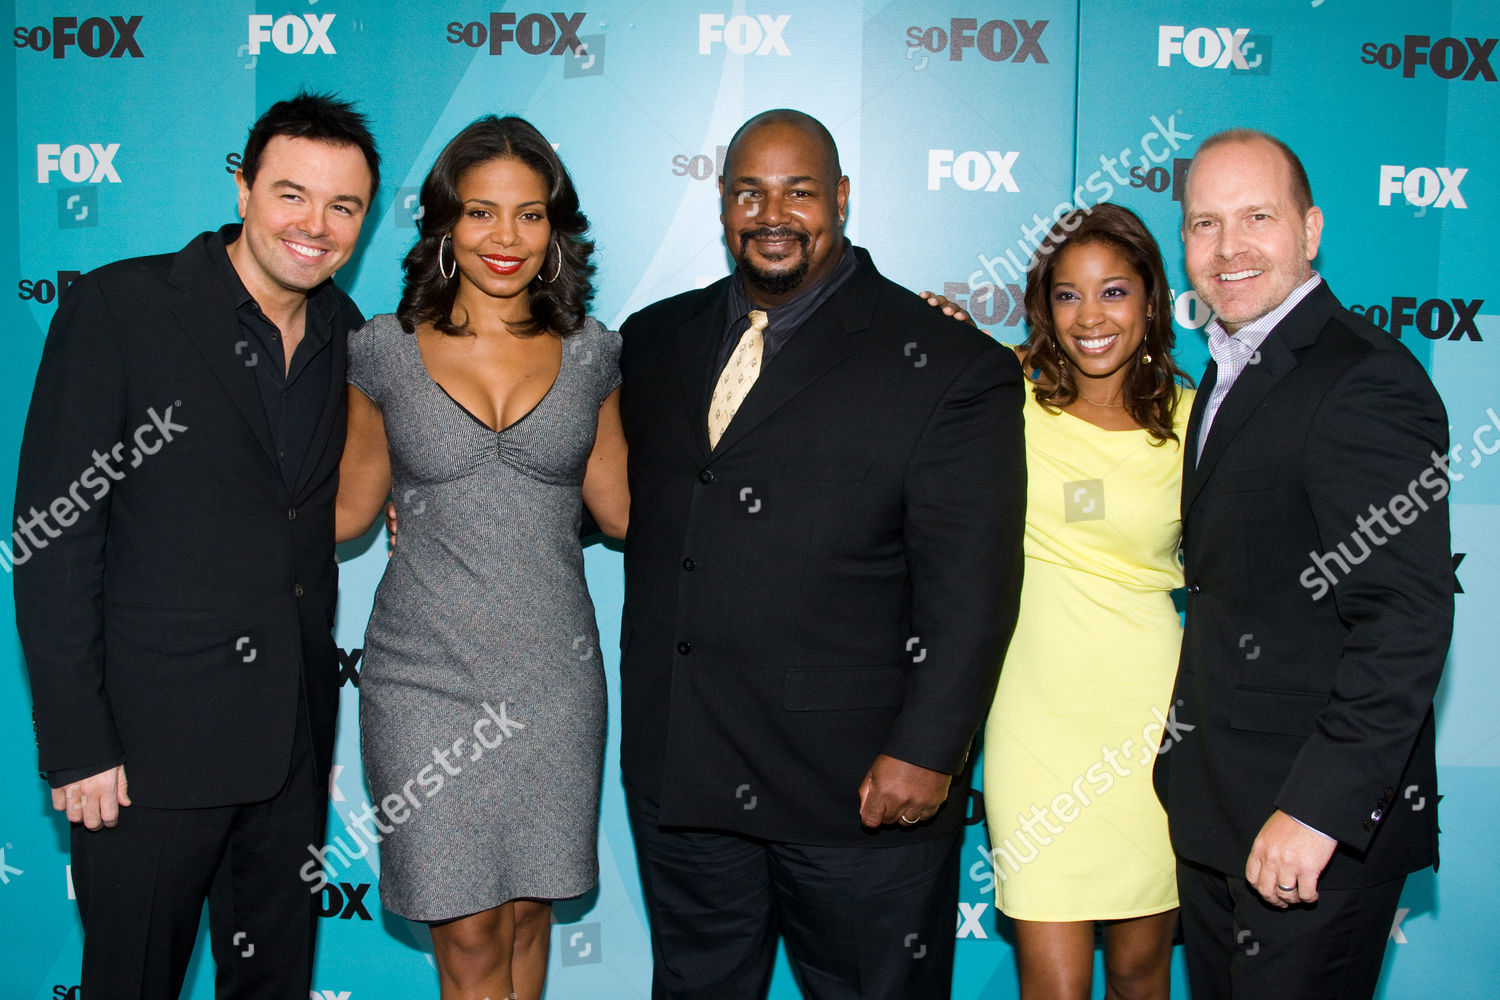 Stock photo of Fox Upfront Party, New York, America - 18 May 2009